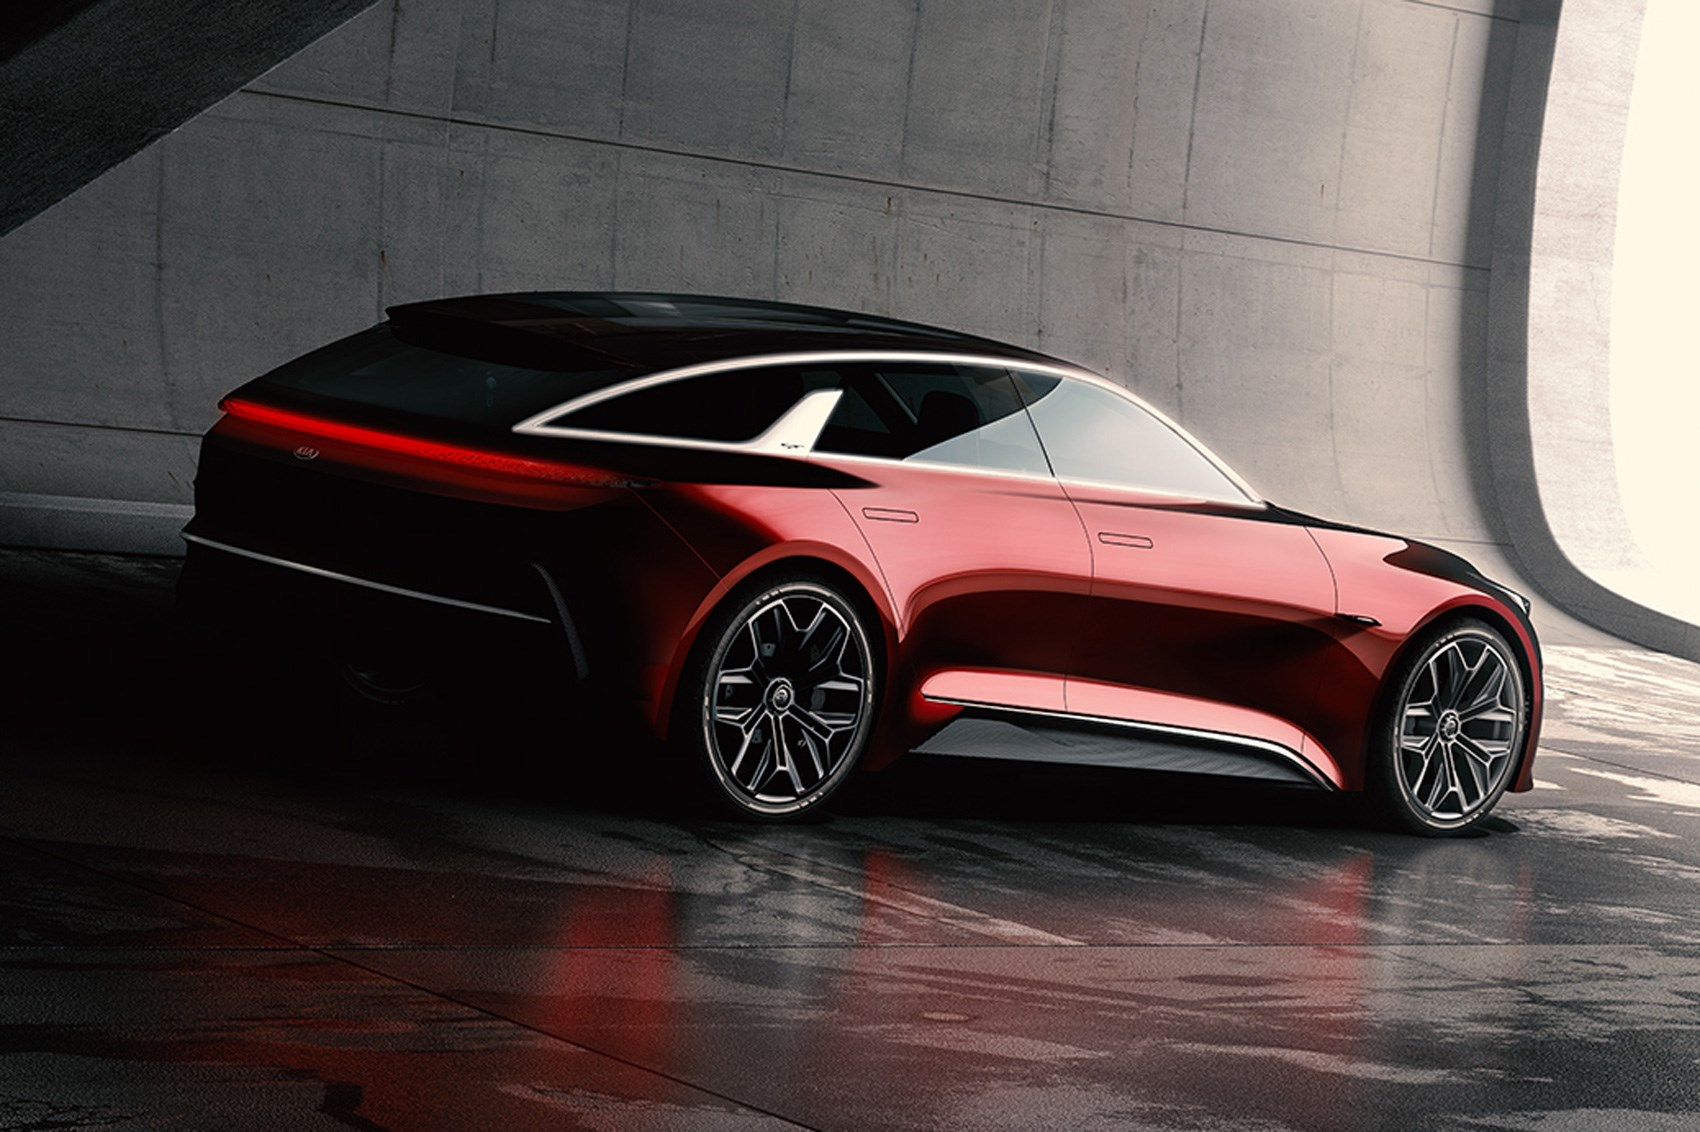 Kia's gorgeous Frankfurt wagon concept has us cursing crossovers